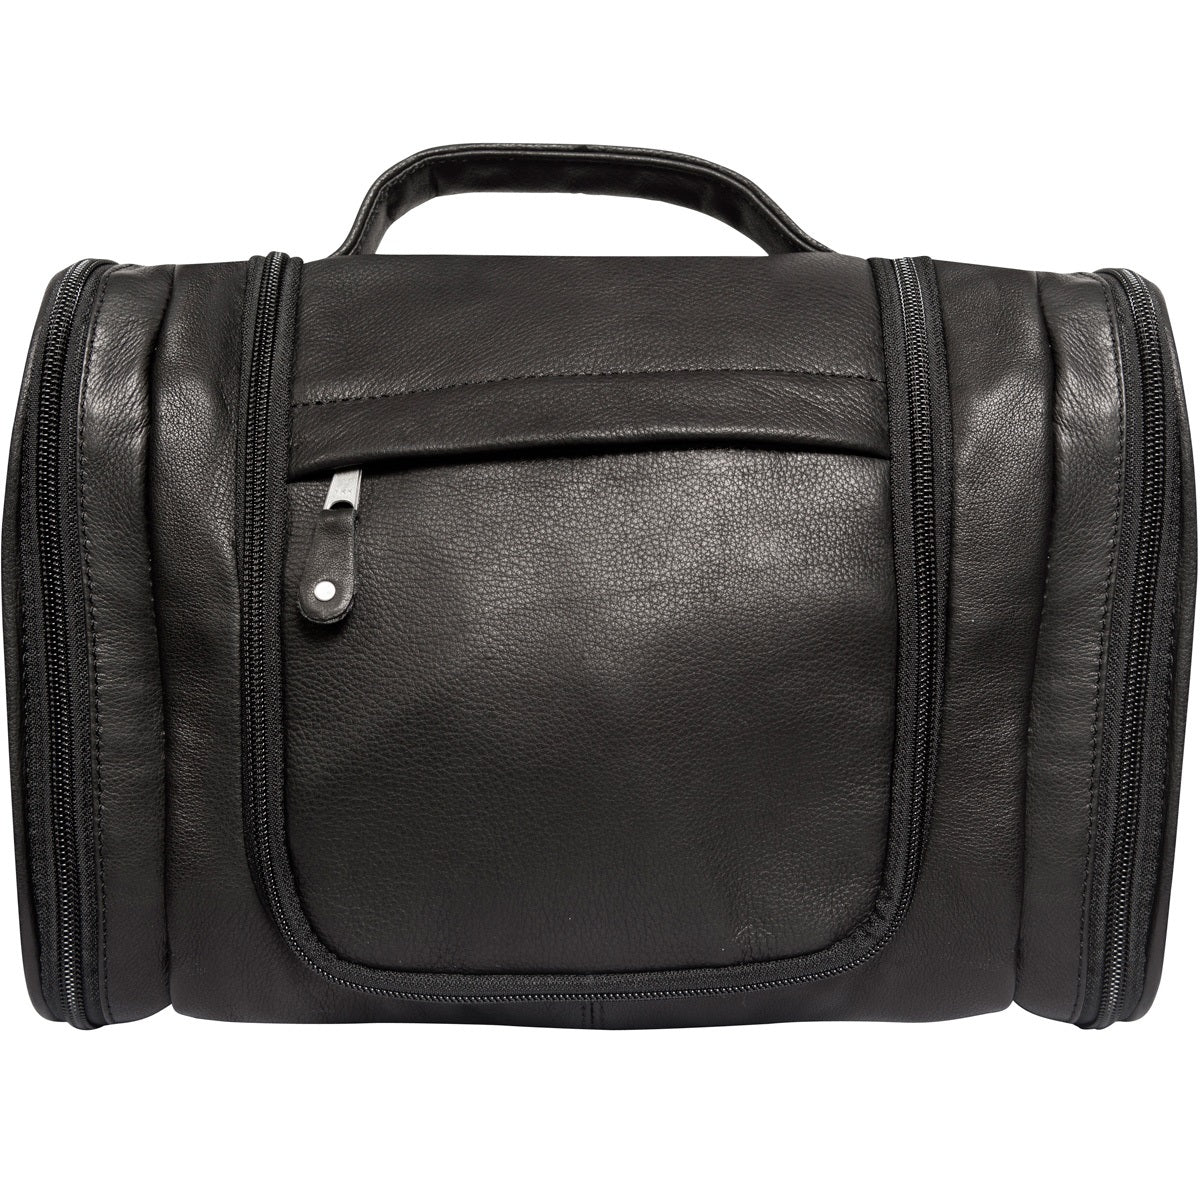 Genuine Leather Hanging Toiletry Bag